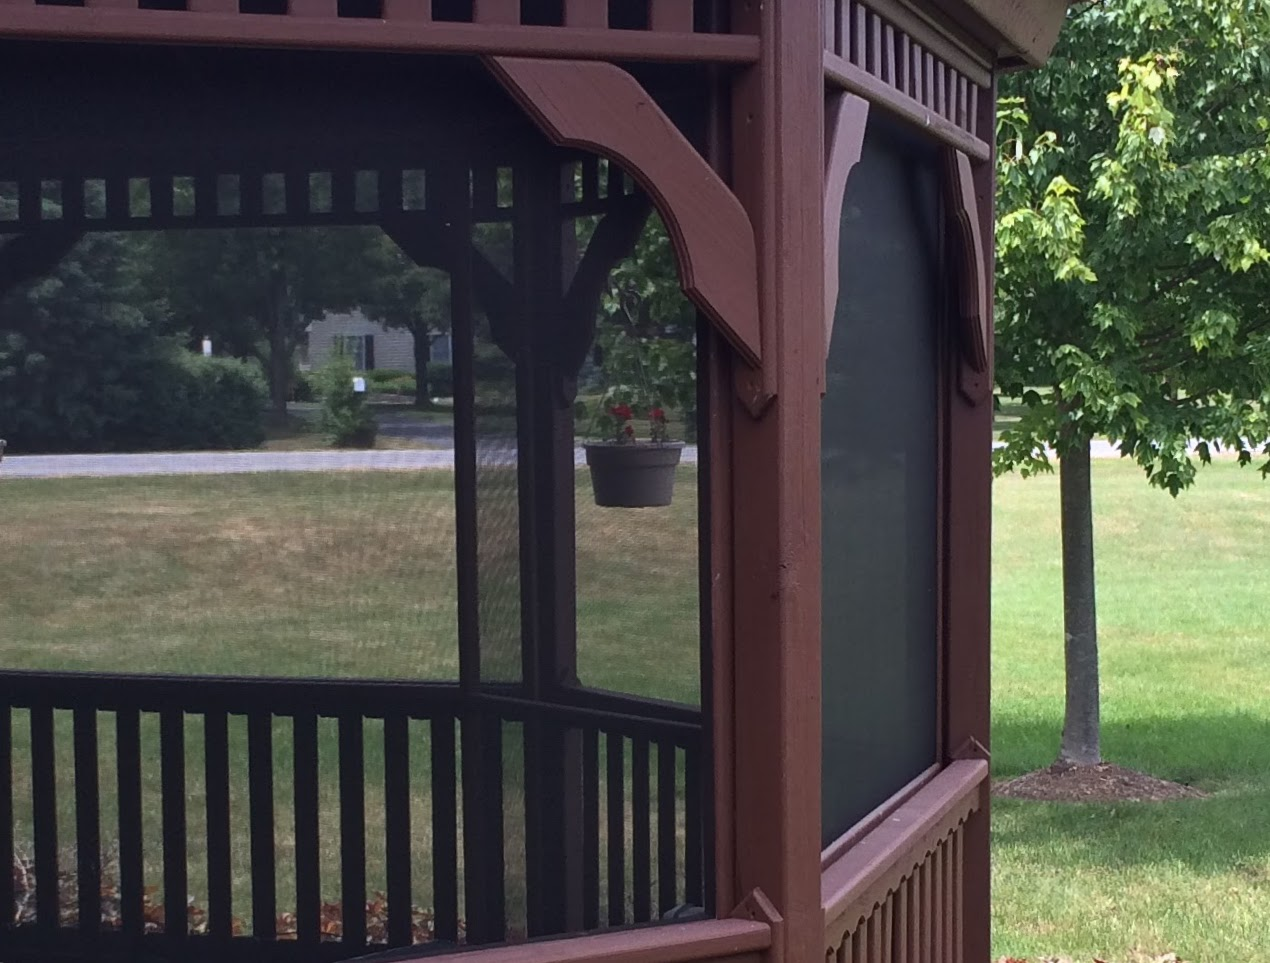 Renue Glass and Screen Repair Garden Gazebo Detail